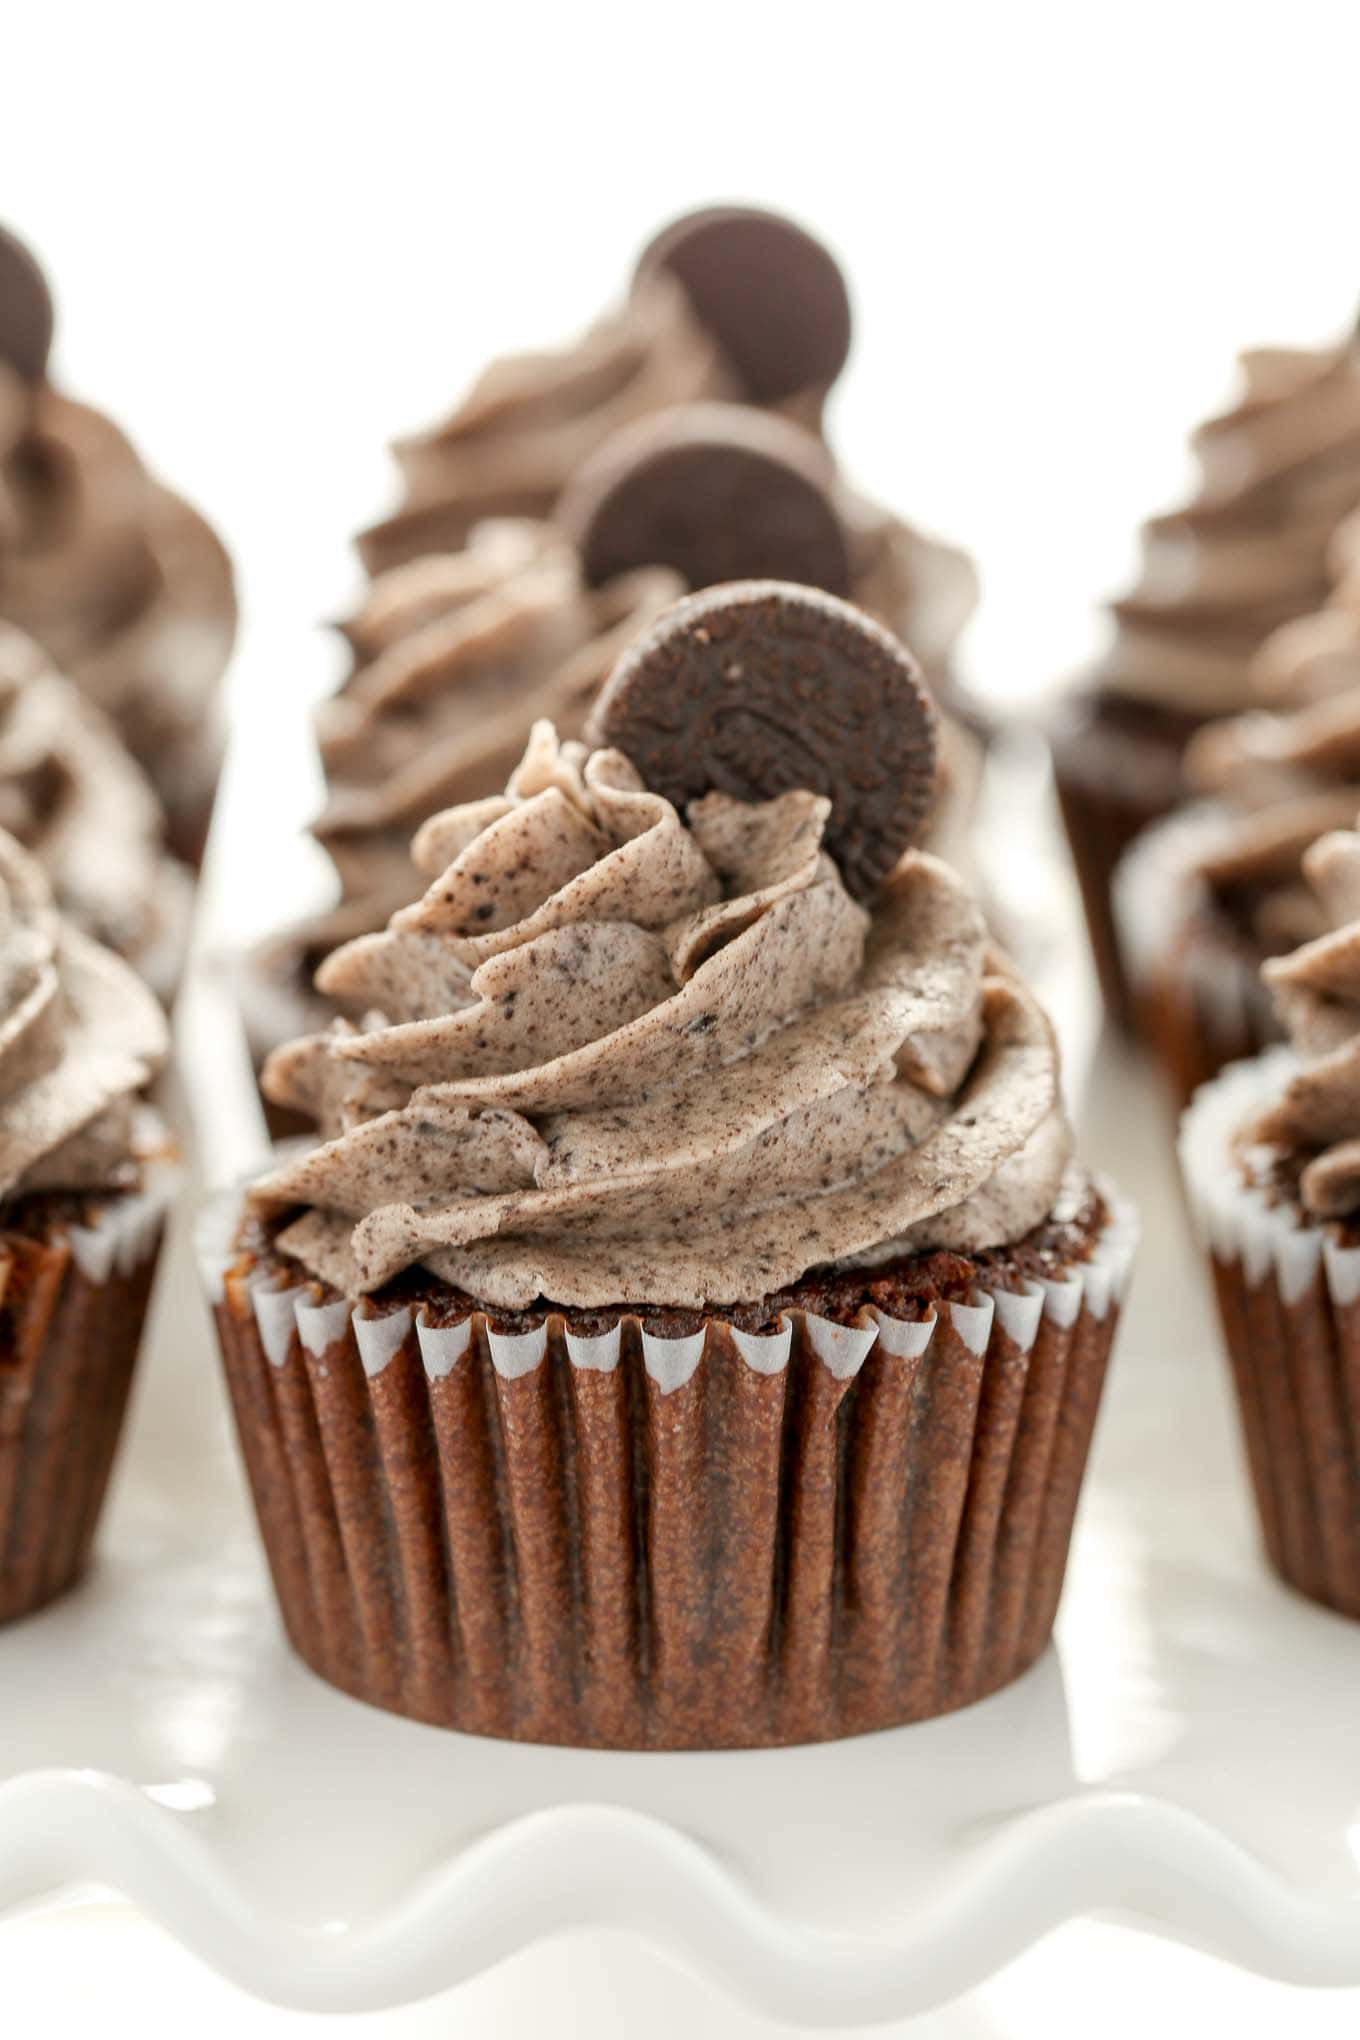 Chocolate Oreo Cupcakes - Live Well Bake Often